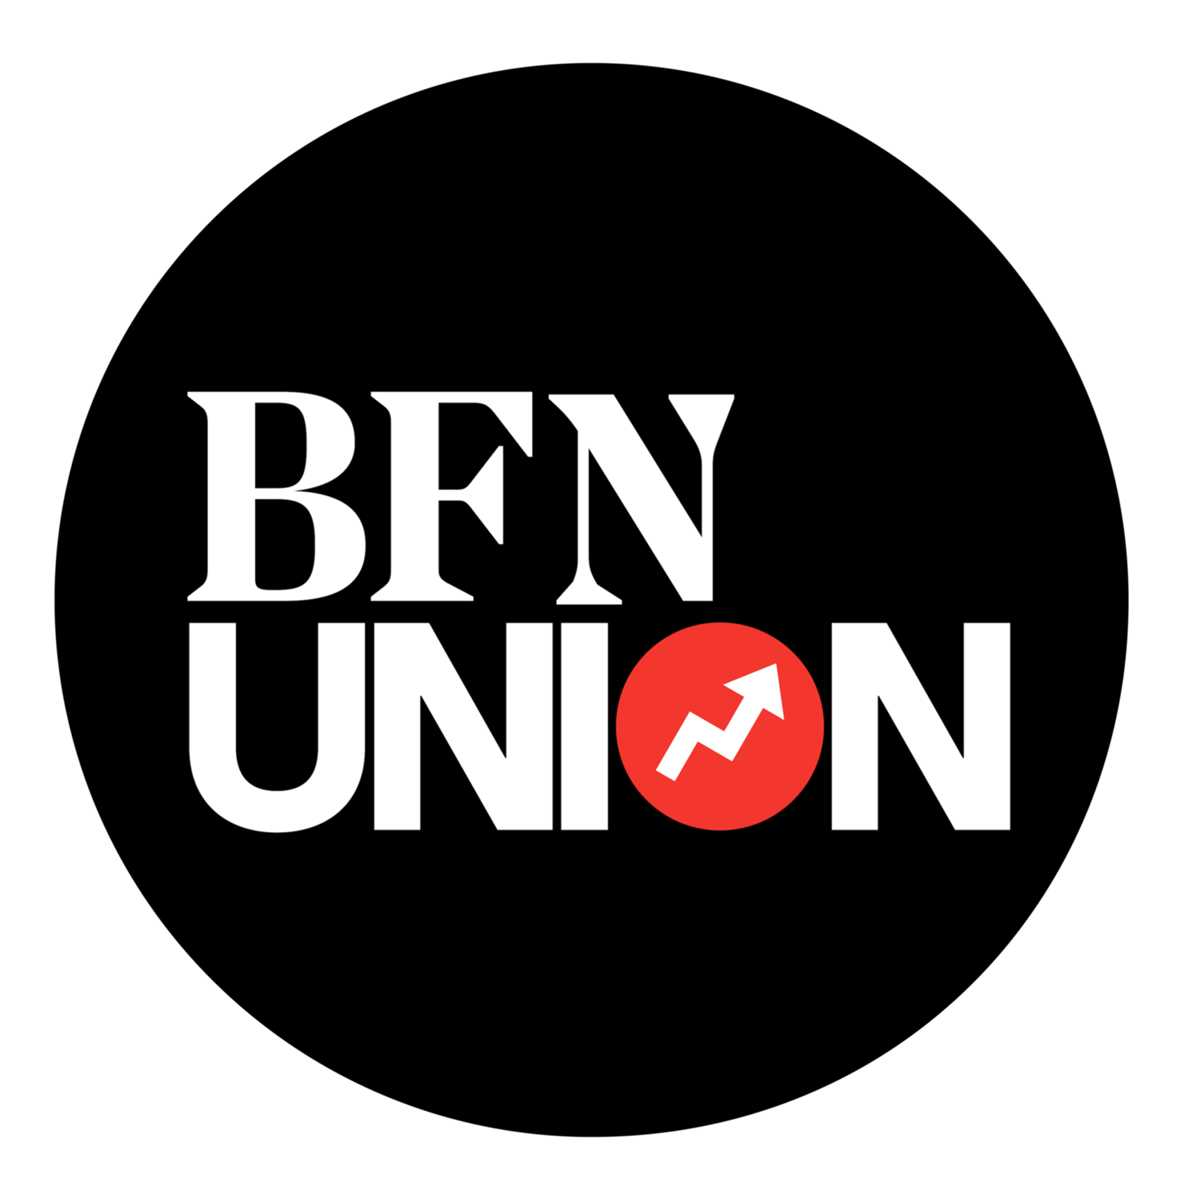 Buzzfeed News Union